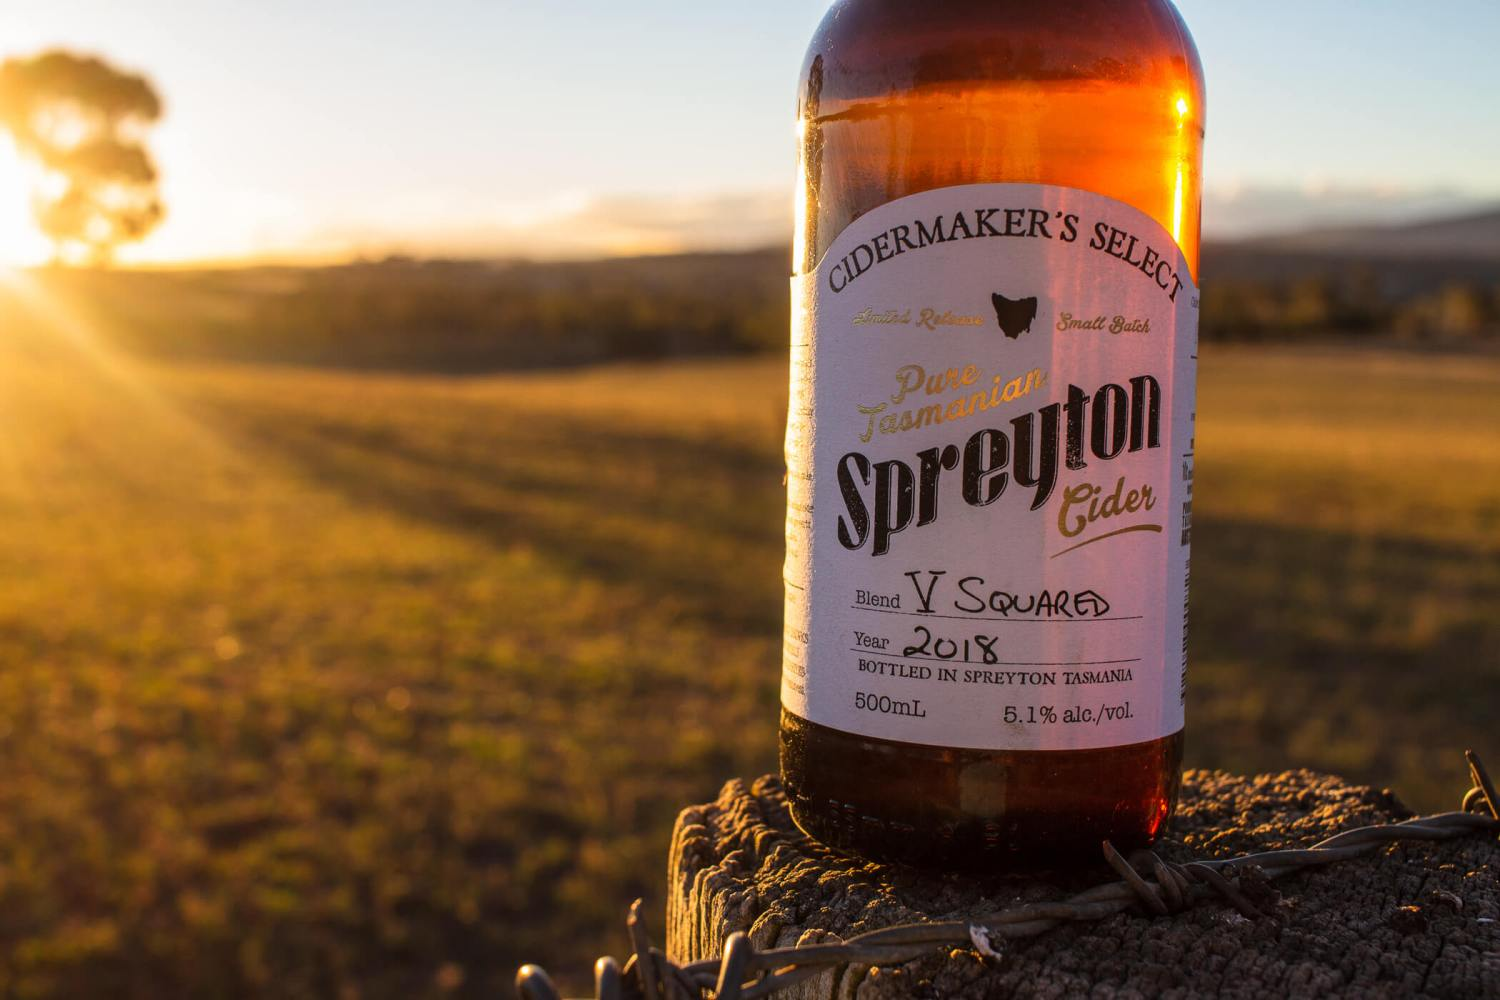 Spreyton Cider Makers Select V Squared 2018